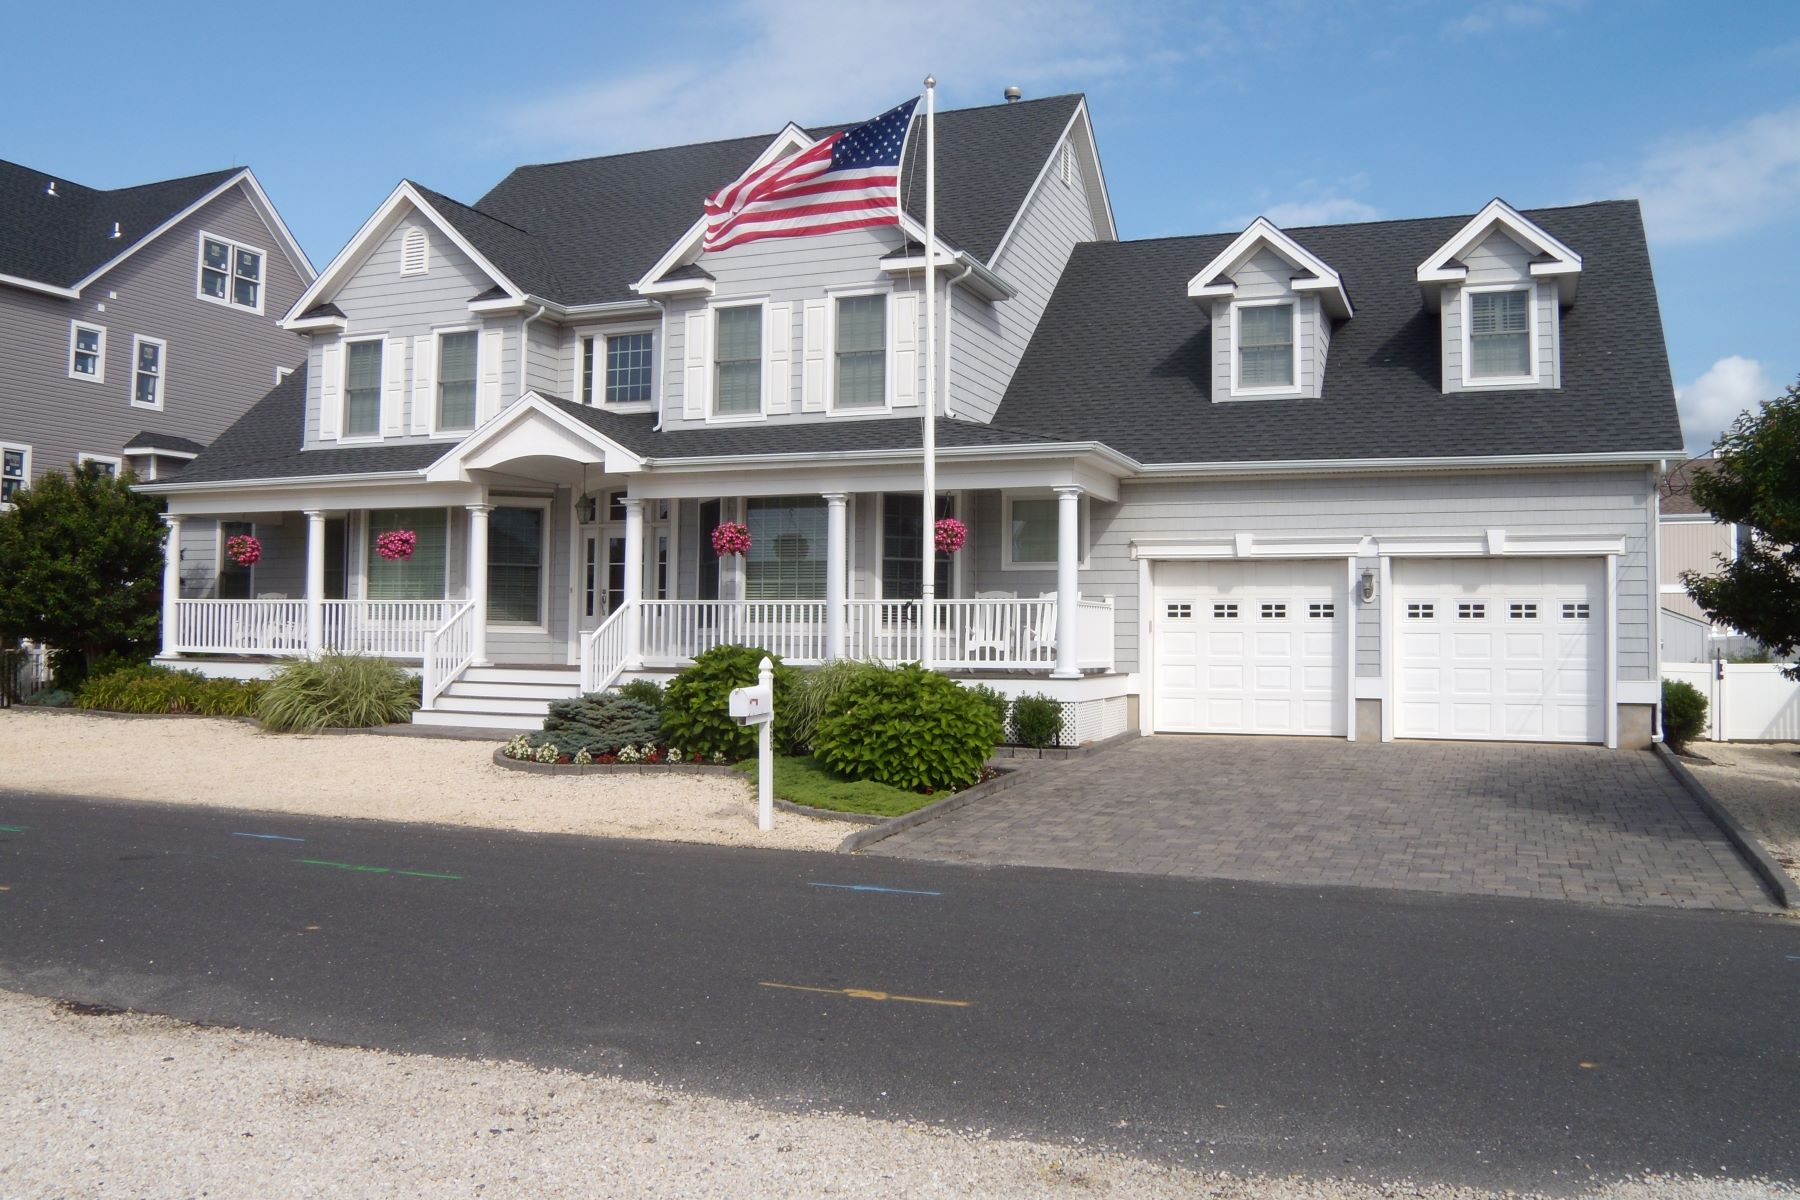 Moradia para Venda às Fantastic Custom Built Home 493 Ellison Drive, Normandy Beach, Nova Jersey 08739 Estados Unidos